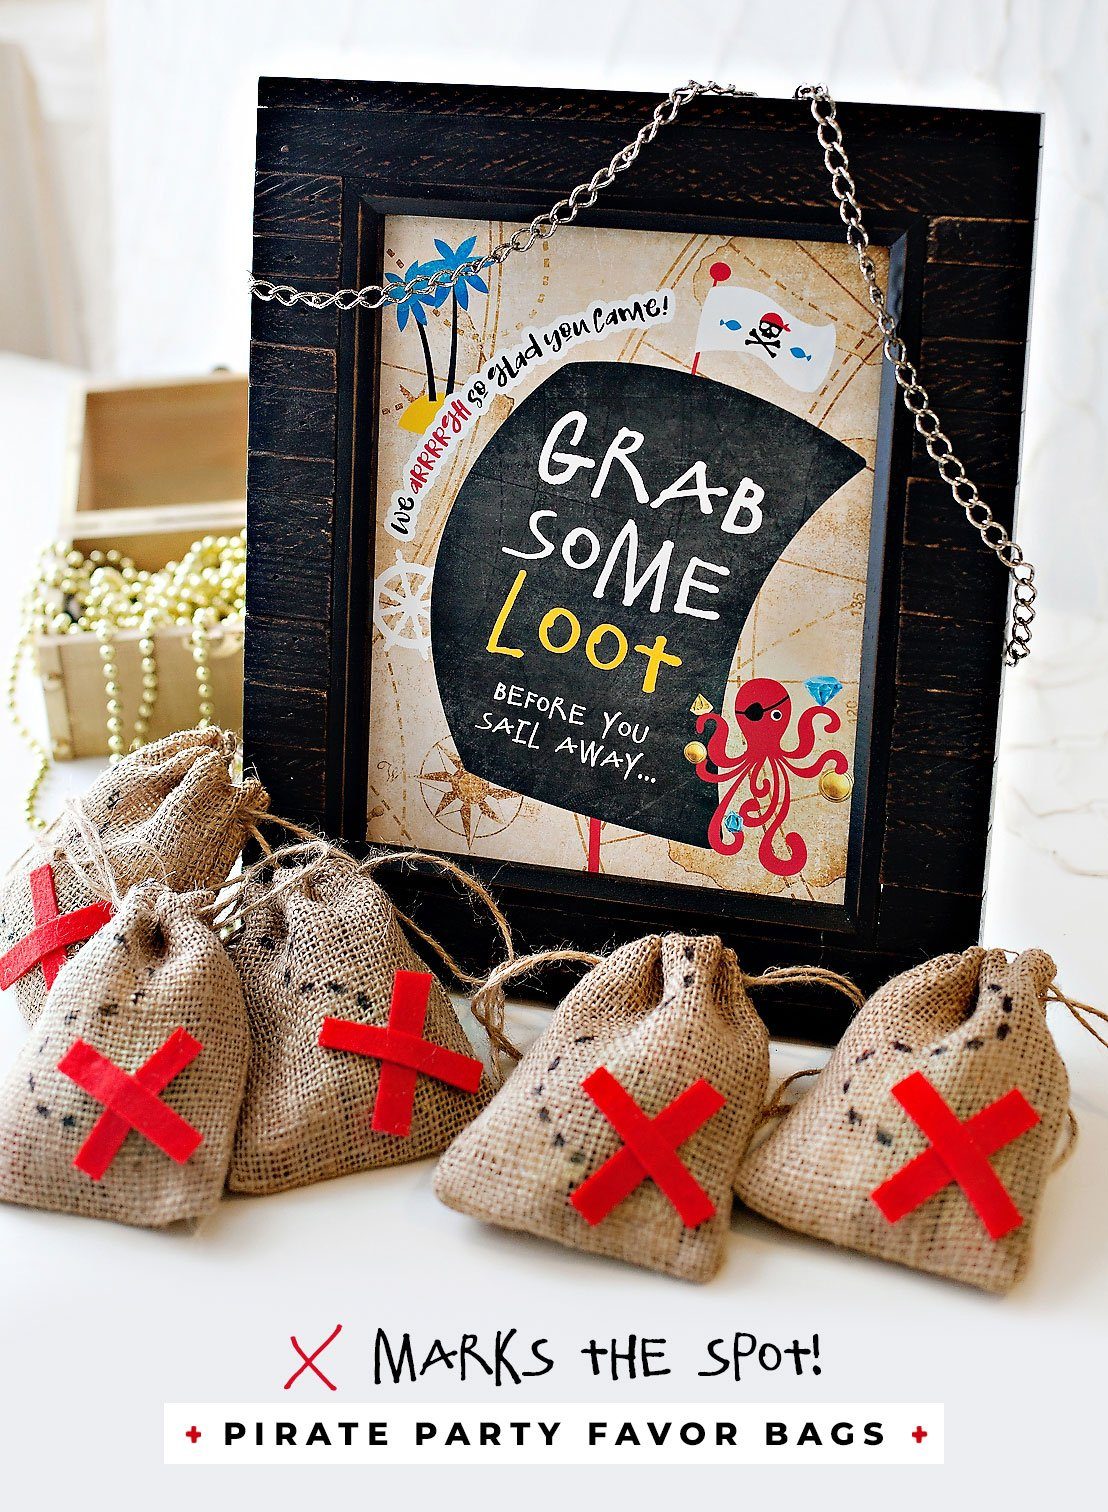 Pirate Party Favor Bags